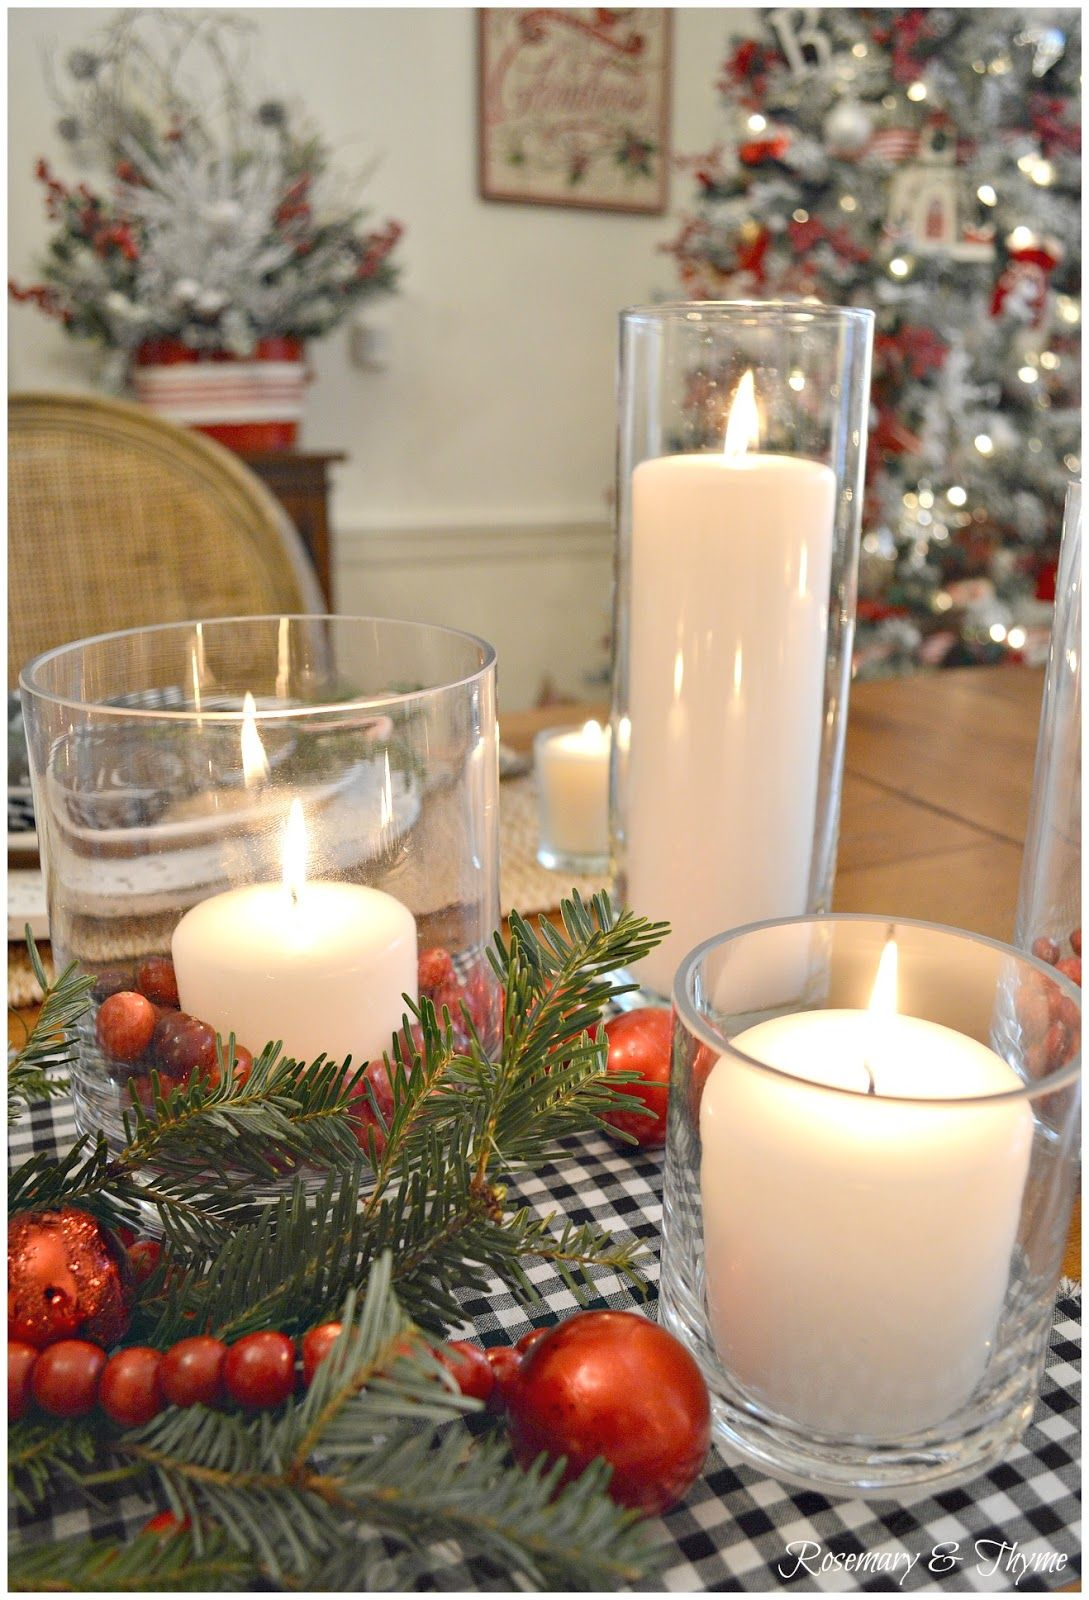 red truck red pickup tablesetting tablescape pier1 farmstyle countrystyle country christmas holiday